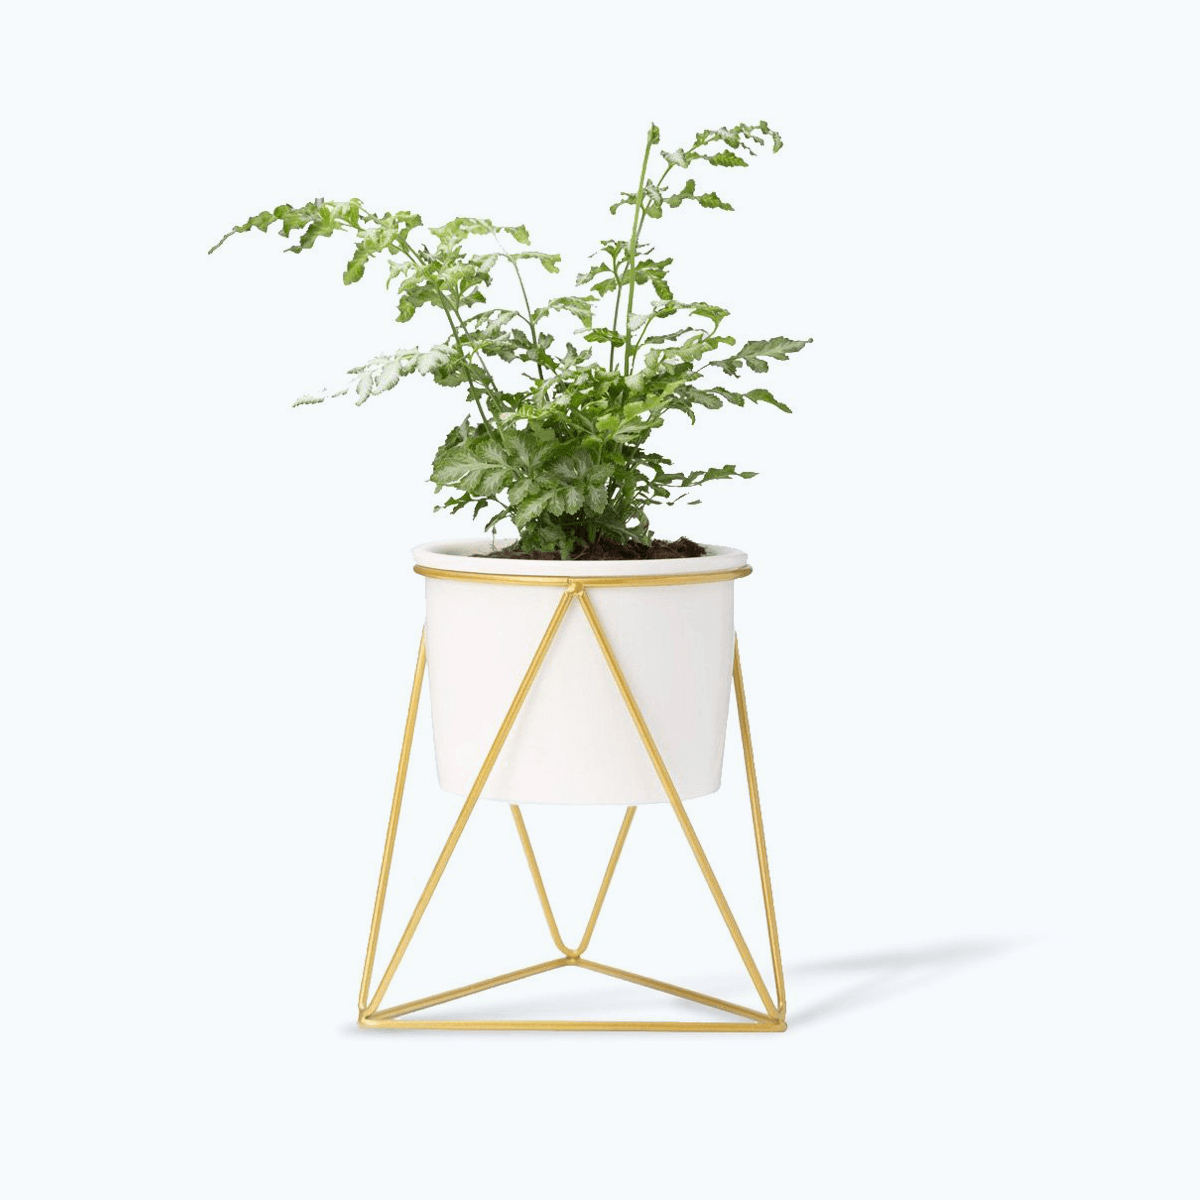 Tabletop Ceramic Planter with Metal Stand